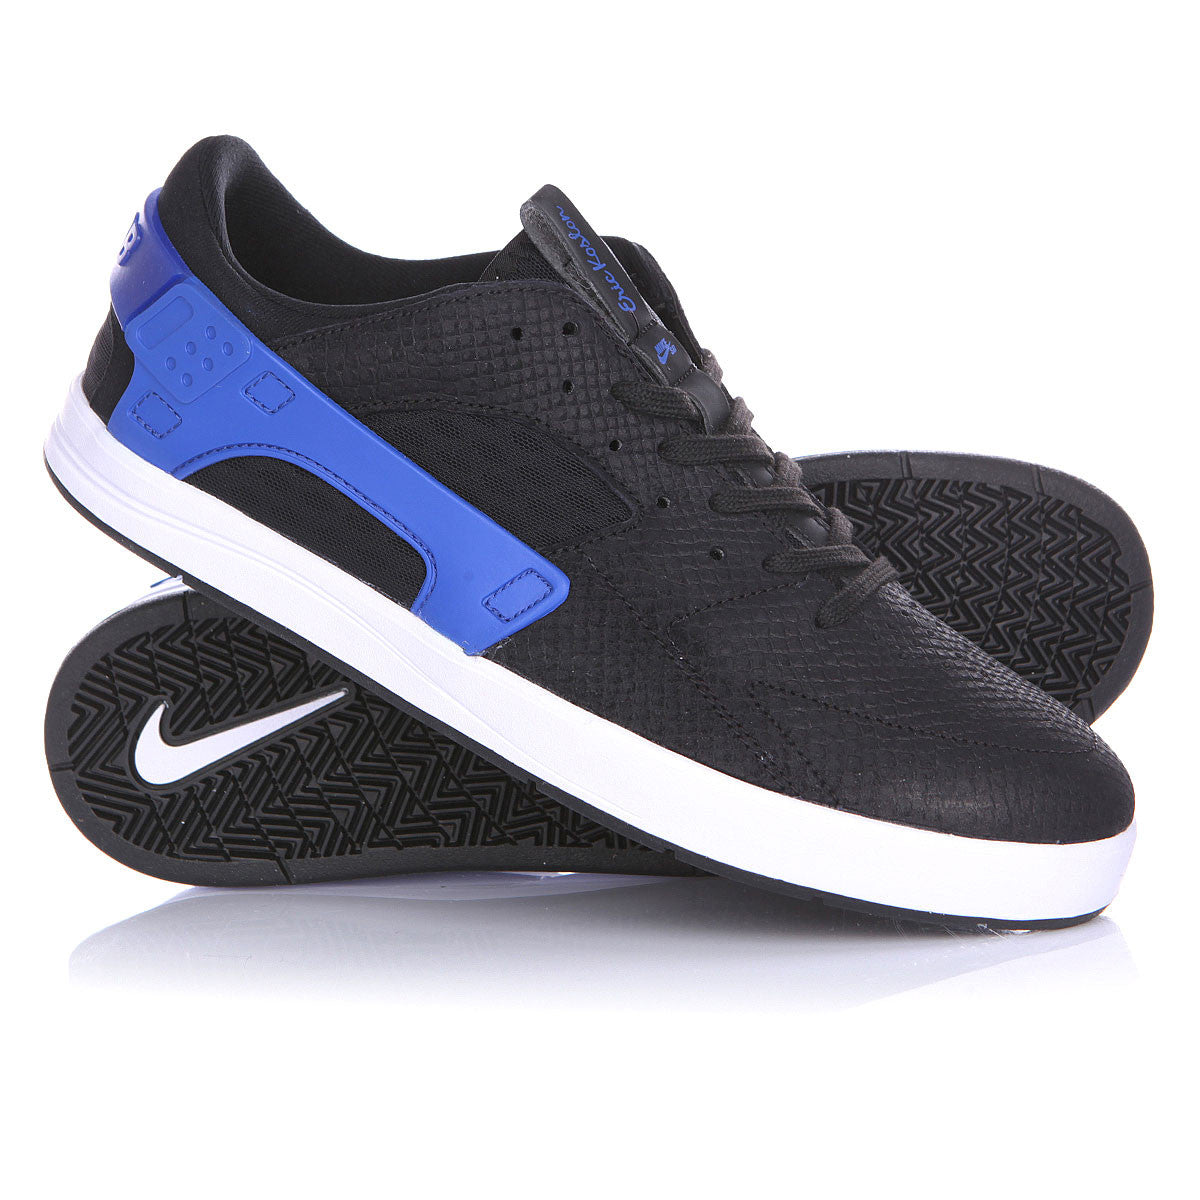 Eric Koston Huarache - Black/Black-Game Royal-White - Stoked Boardshop  - 4